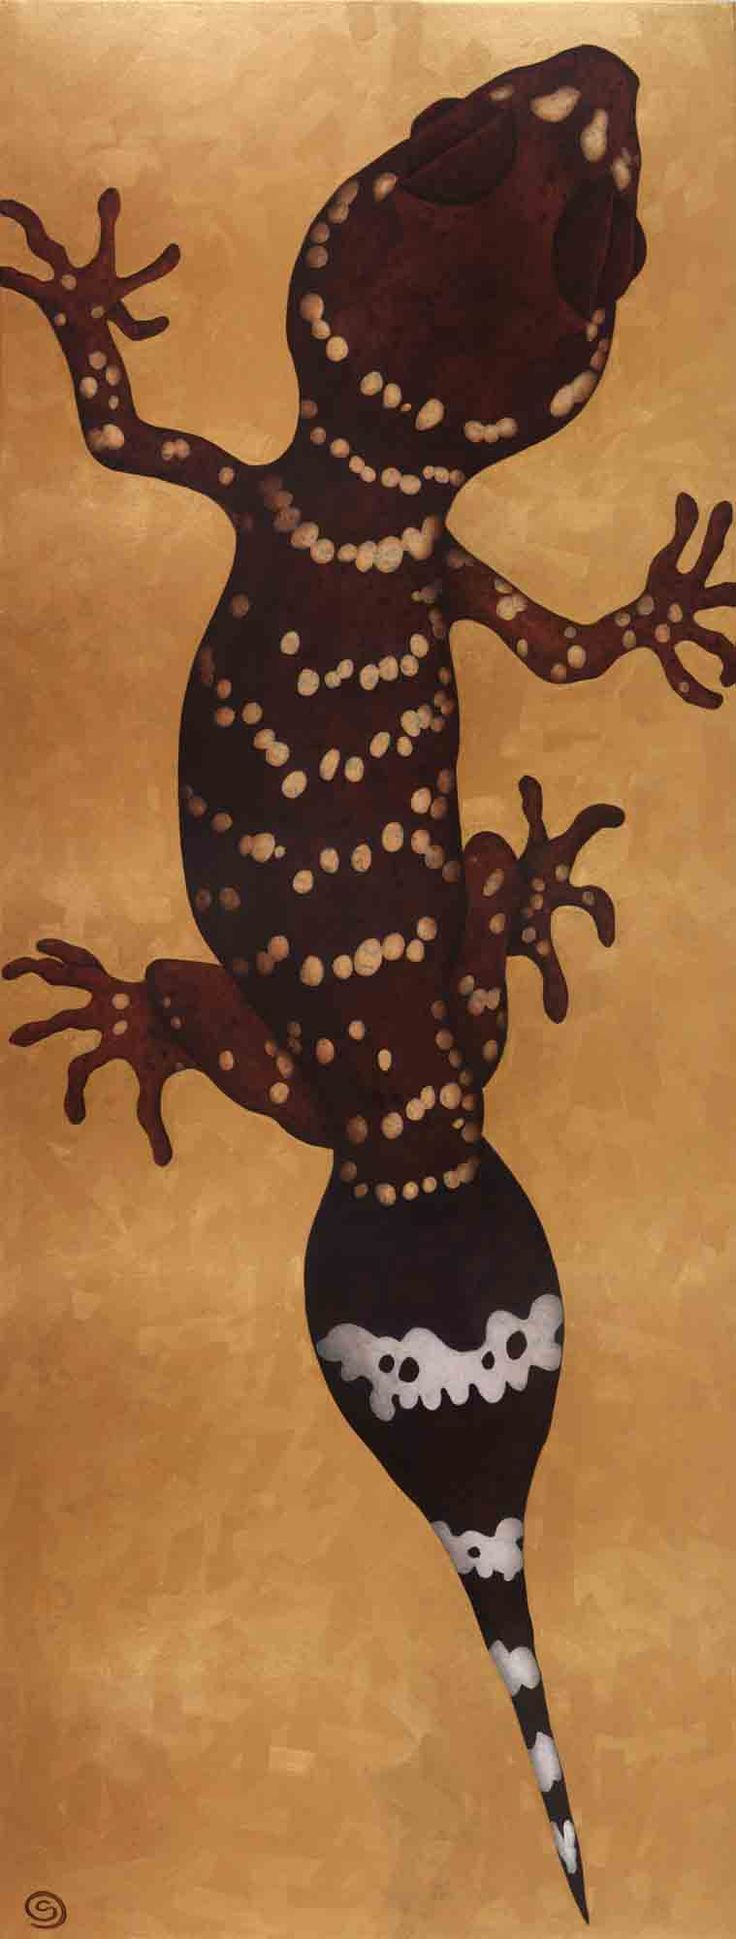 Gecko. Small Acrylic on Canvas, 180x67cm, Original $1800, Limited Edition Prints Available